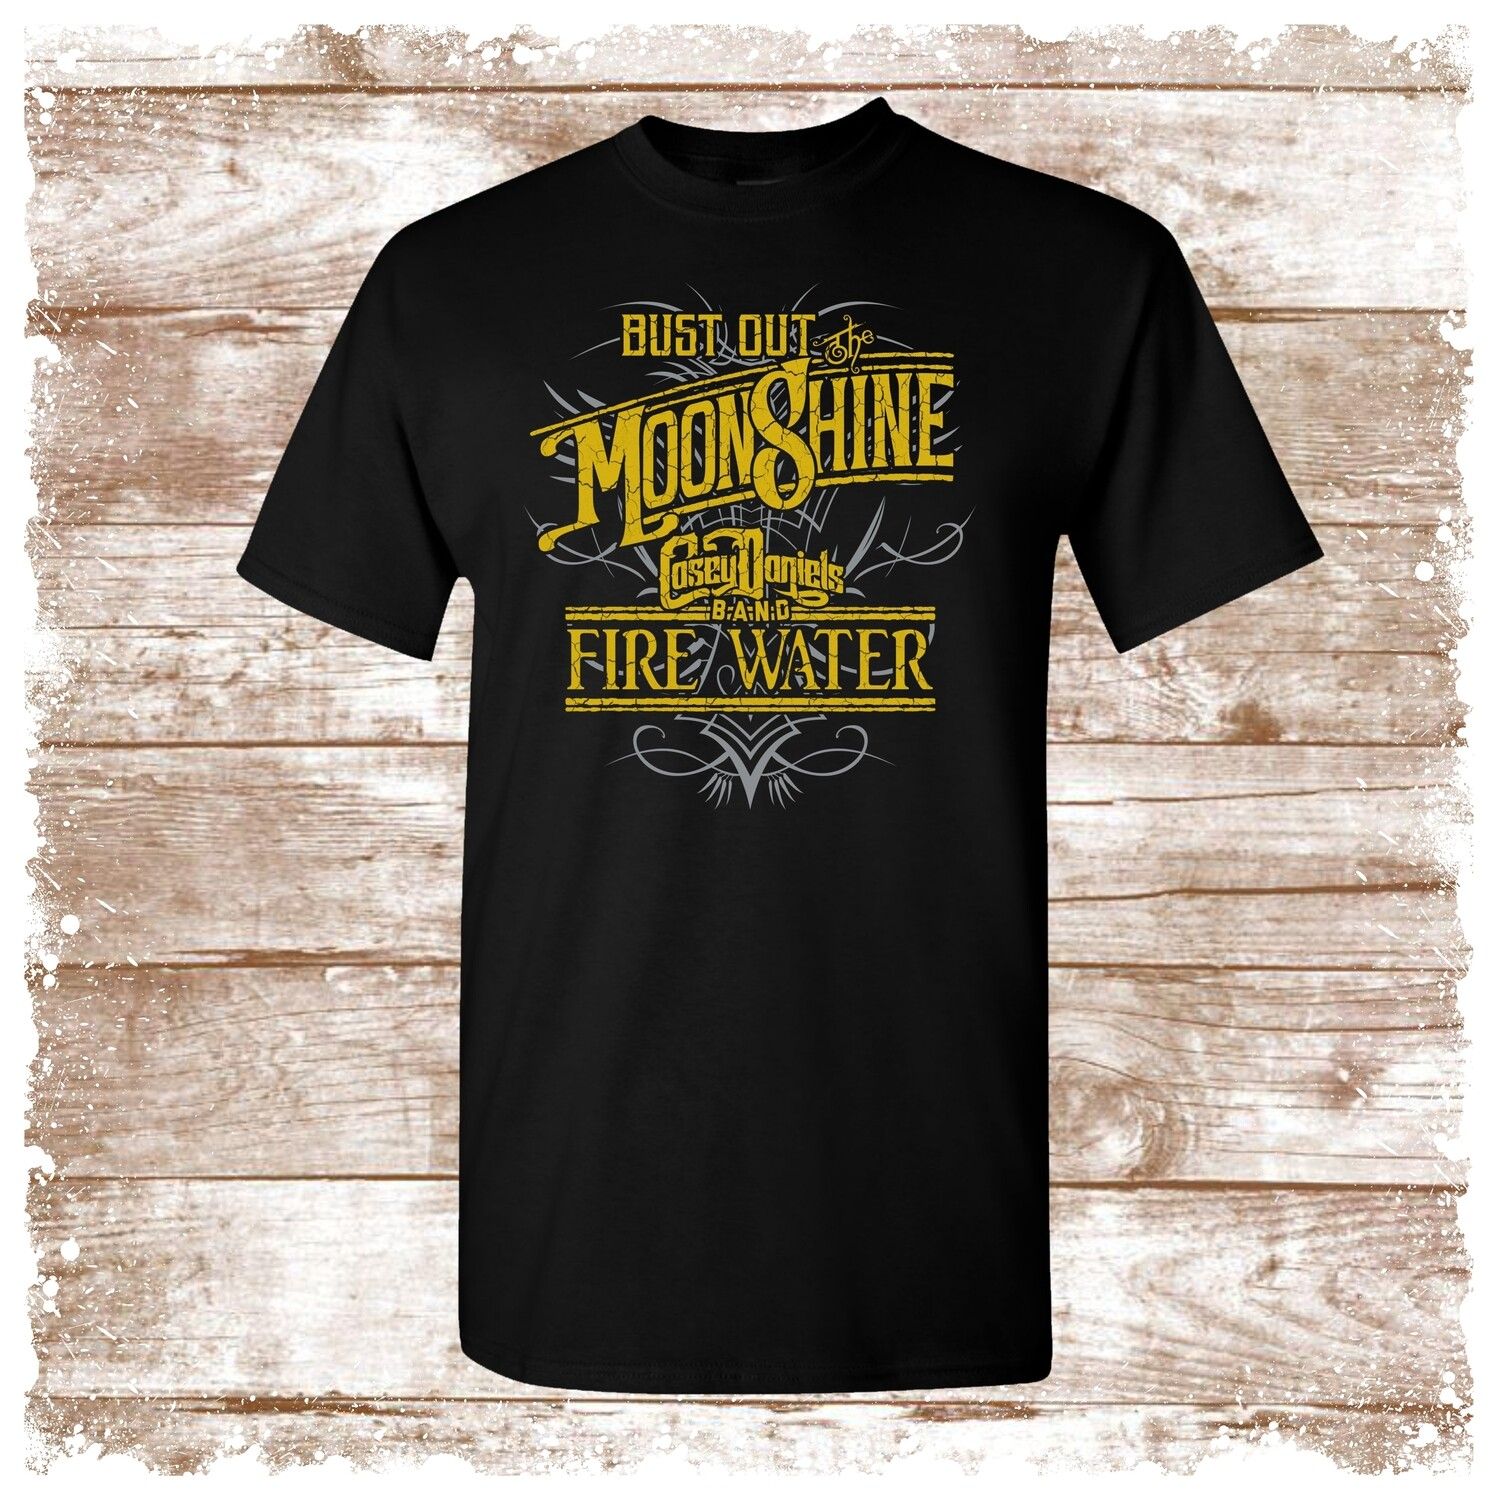 Bust Out The Moonshine Tee